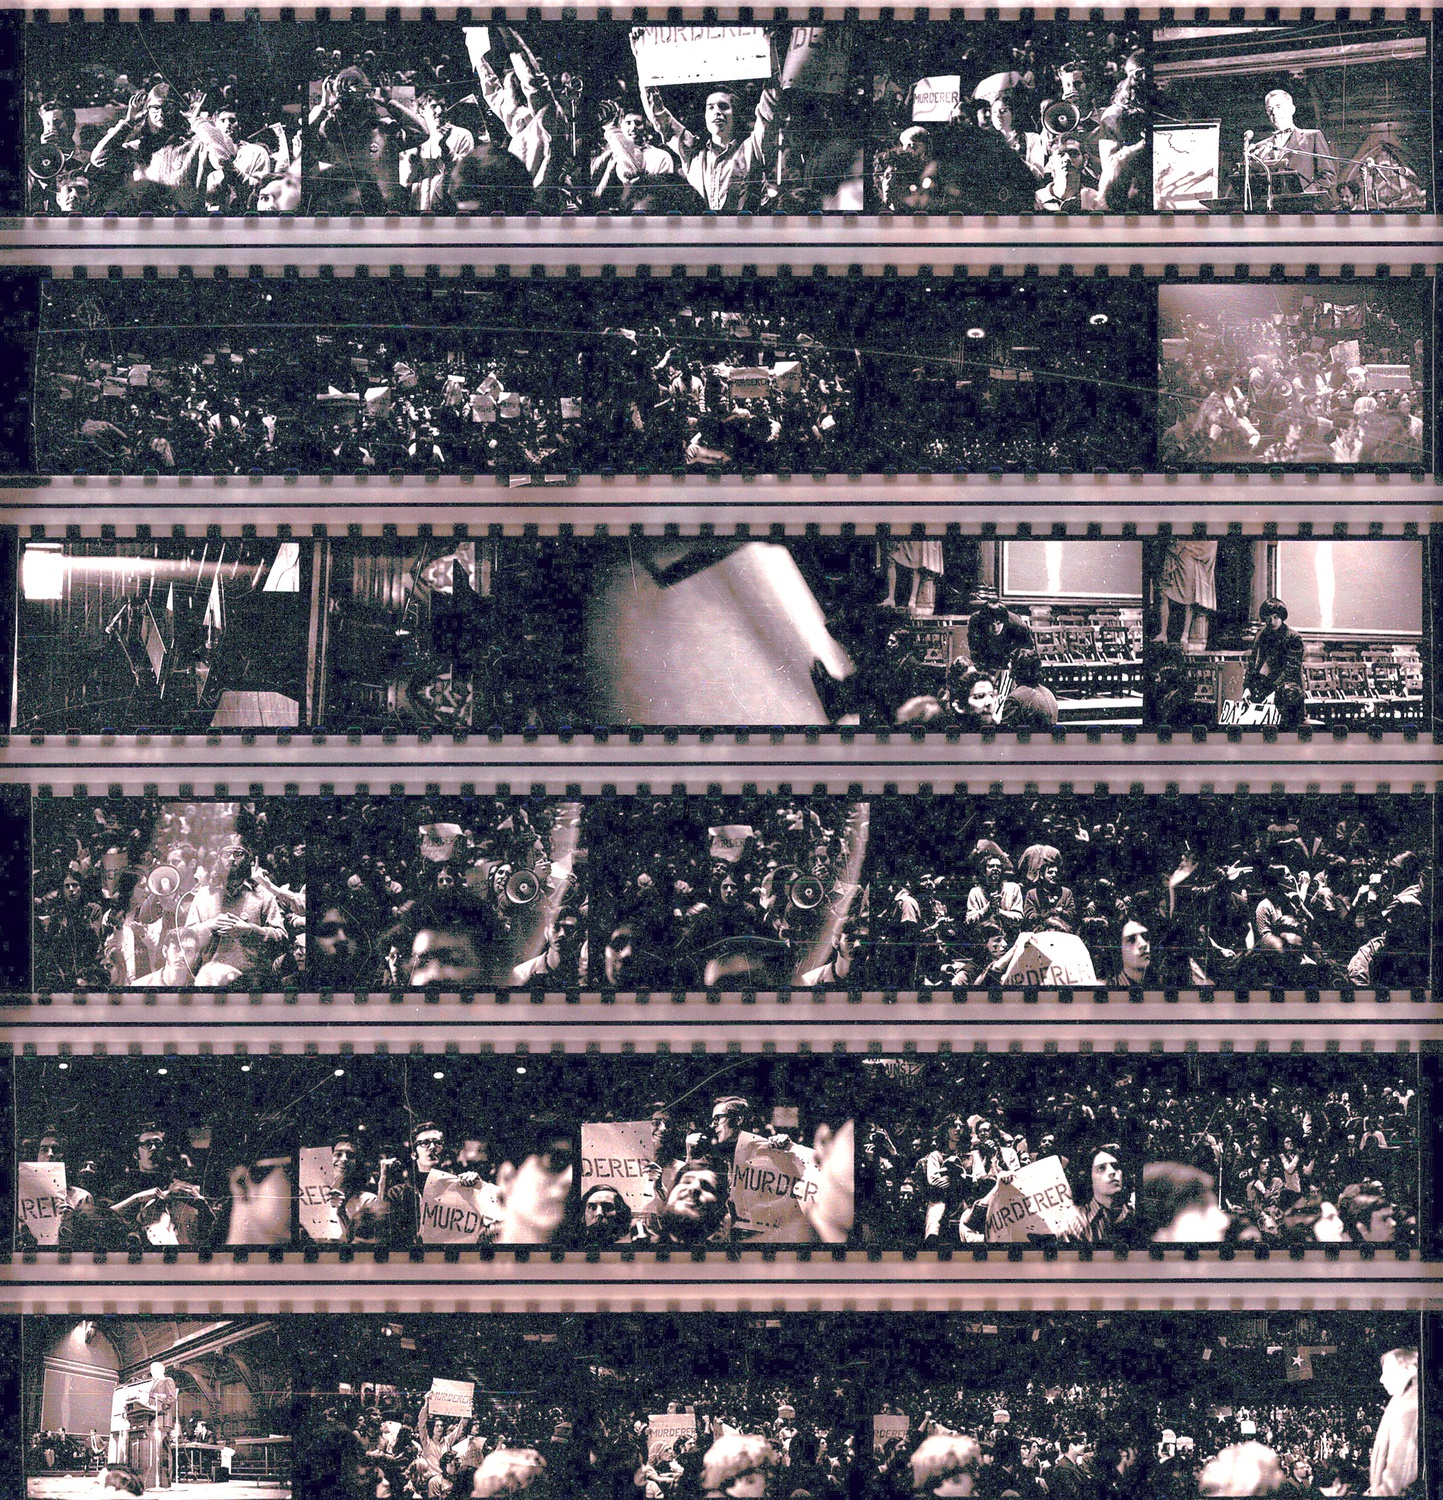 Contact sheets from photos taken at the Sanders Theatre protest.